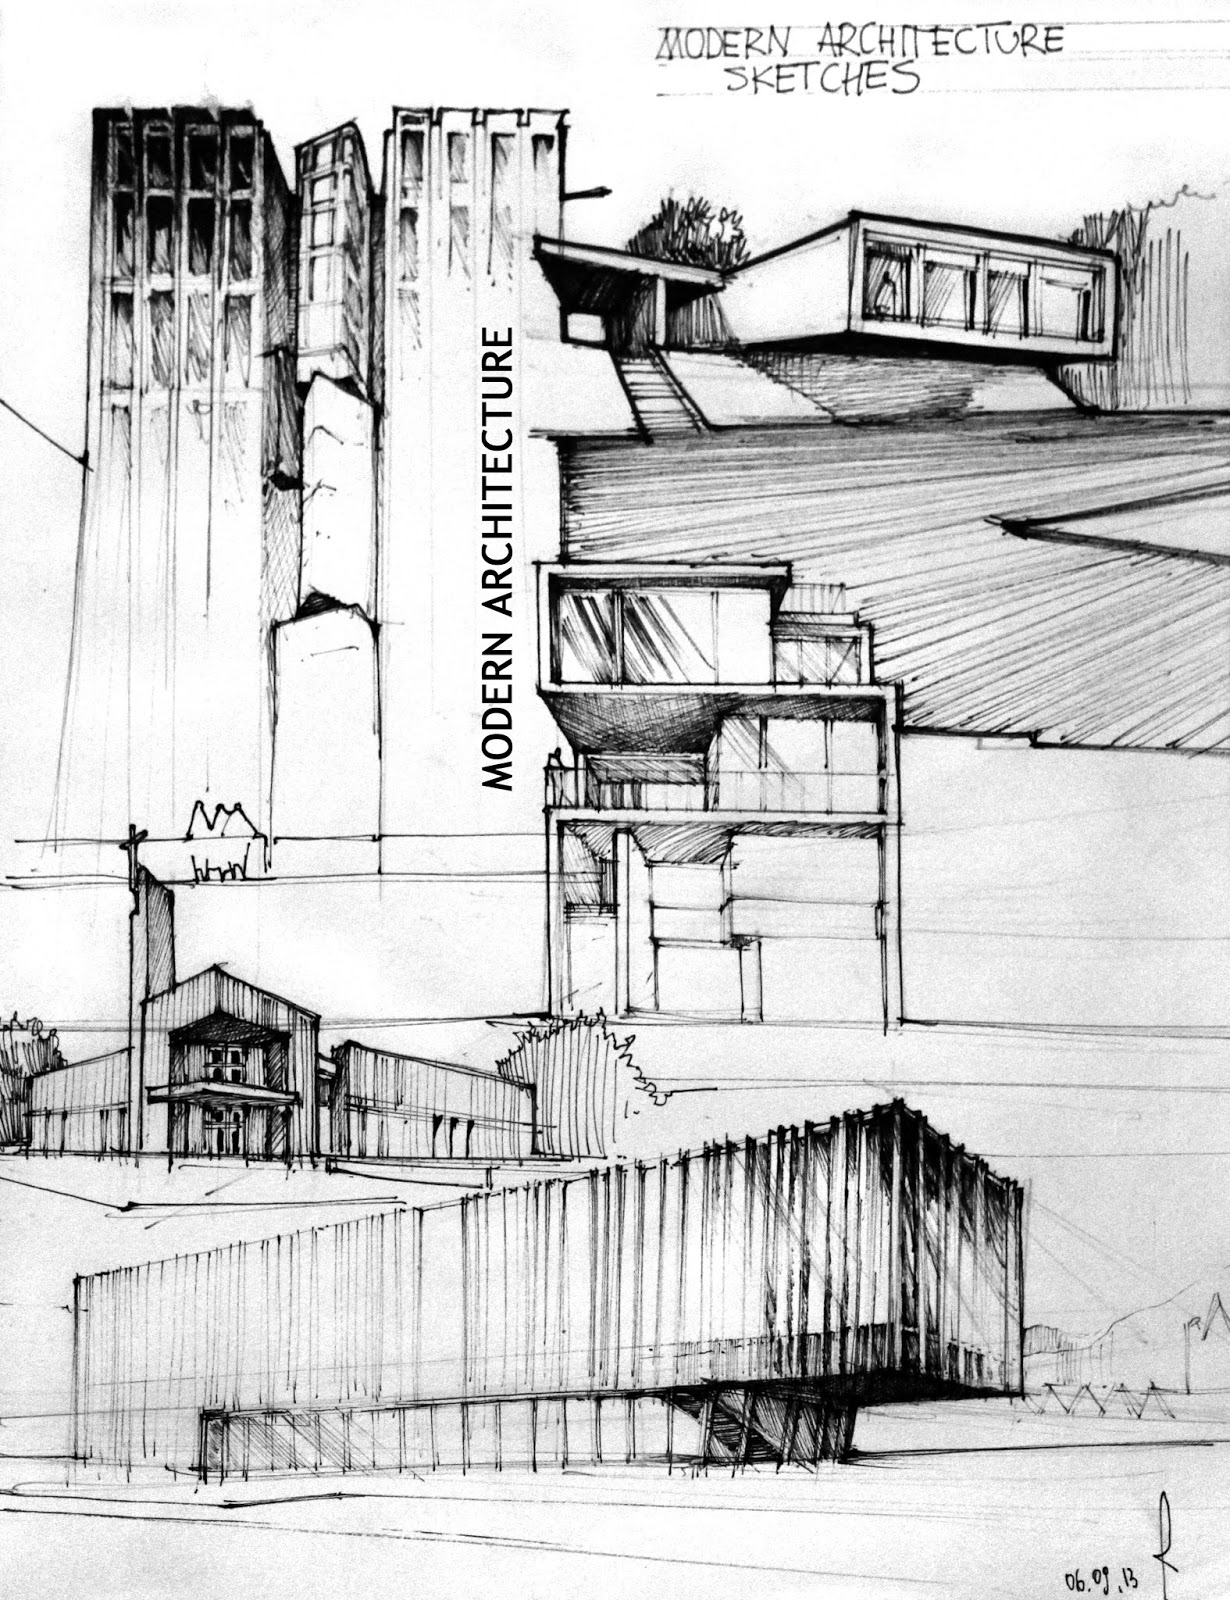 Modern architecture sketches artur st pniak gallery for Architecture design drawing